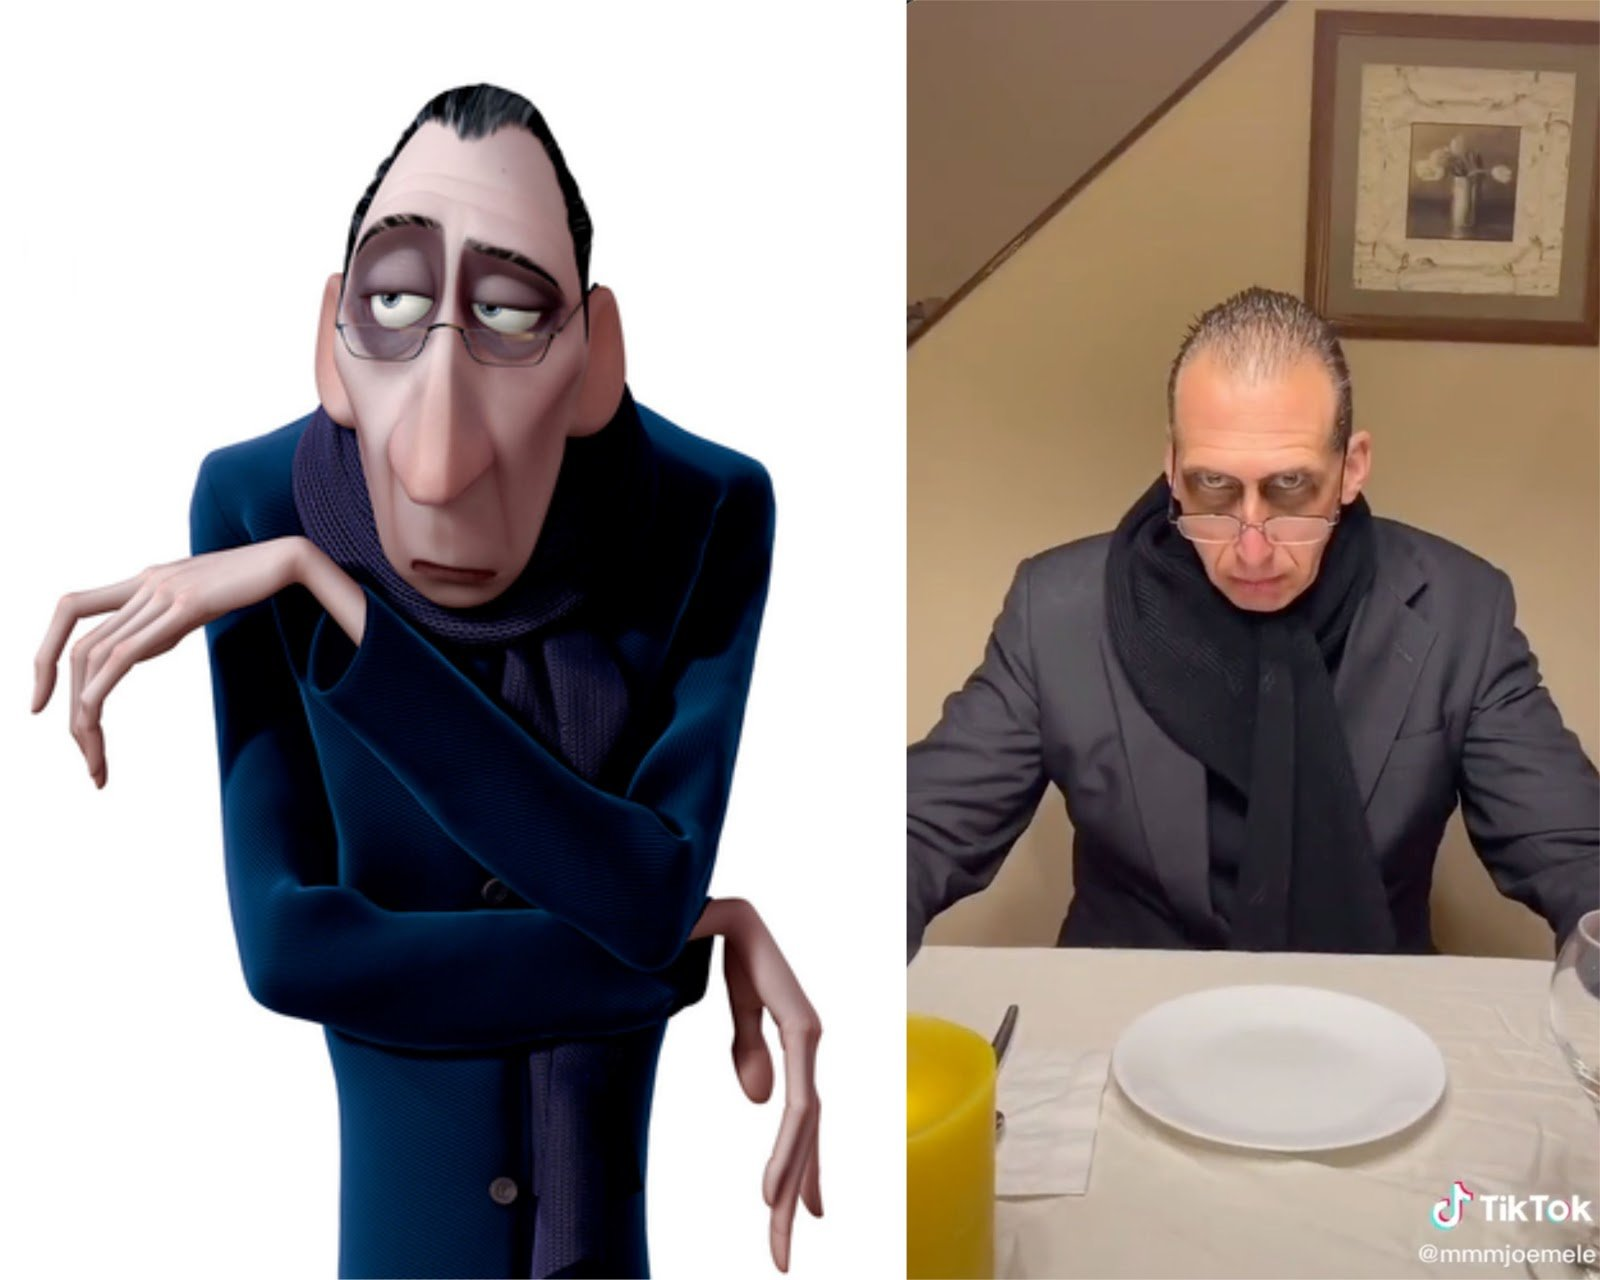 Tiktok User Transforms His Dad Into Anton Ego The Food Critic From Ratatouille Laughingplace Com